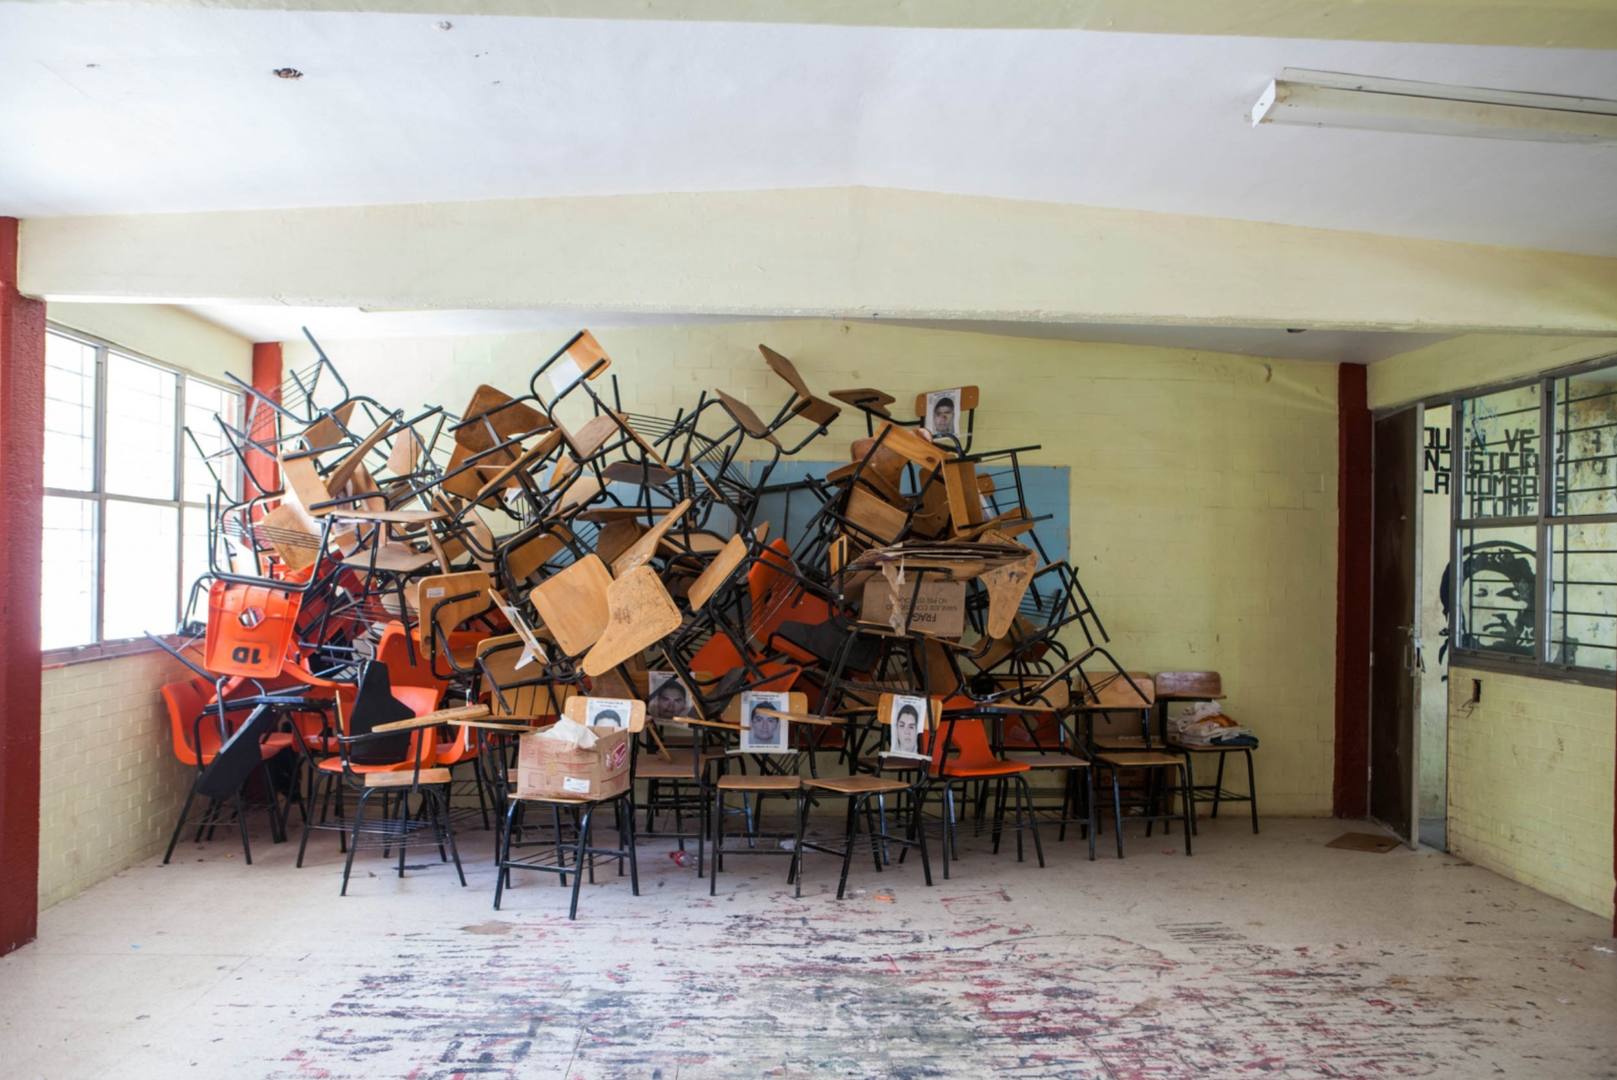 A classroom at the Escuela Normal Rural Raúl Isidro Burgosde Ayotzinapa, 2014. Chairs have been piled up to make room for sleeping quarters for the victim's familes and supporters in the months folowing the attacks of September 26-27.  Photo: Livia Radwanski